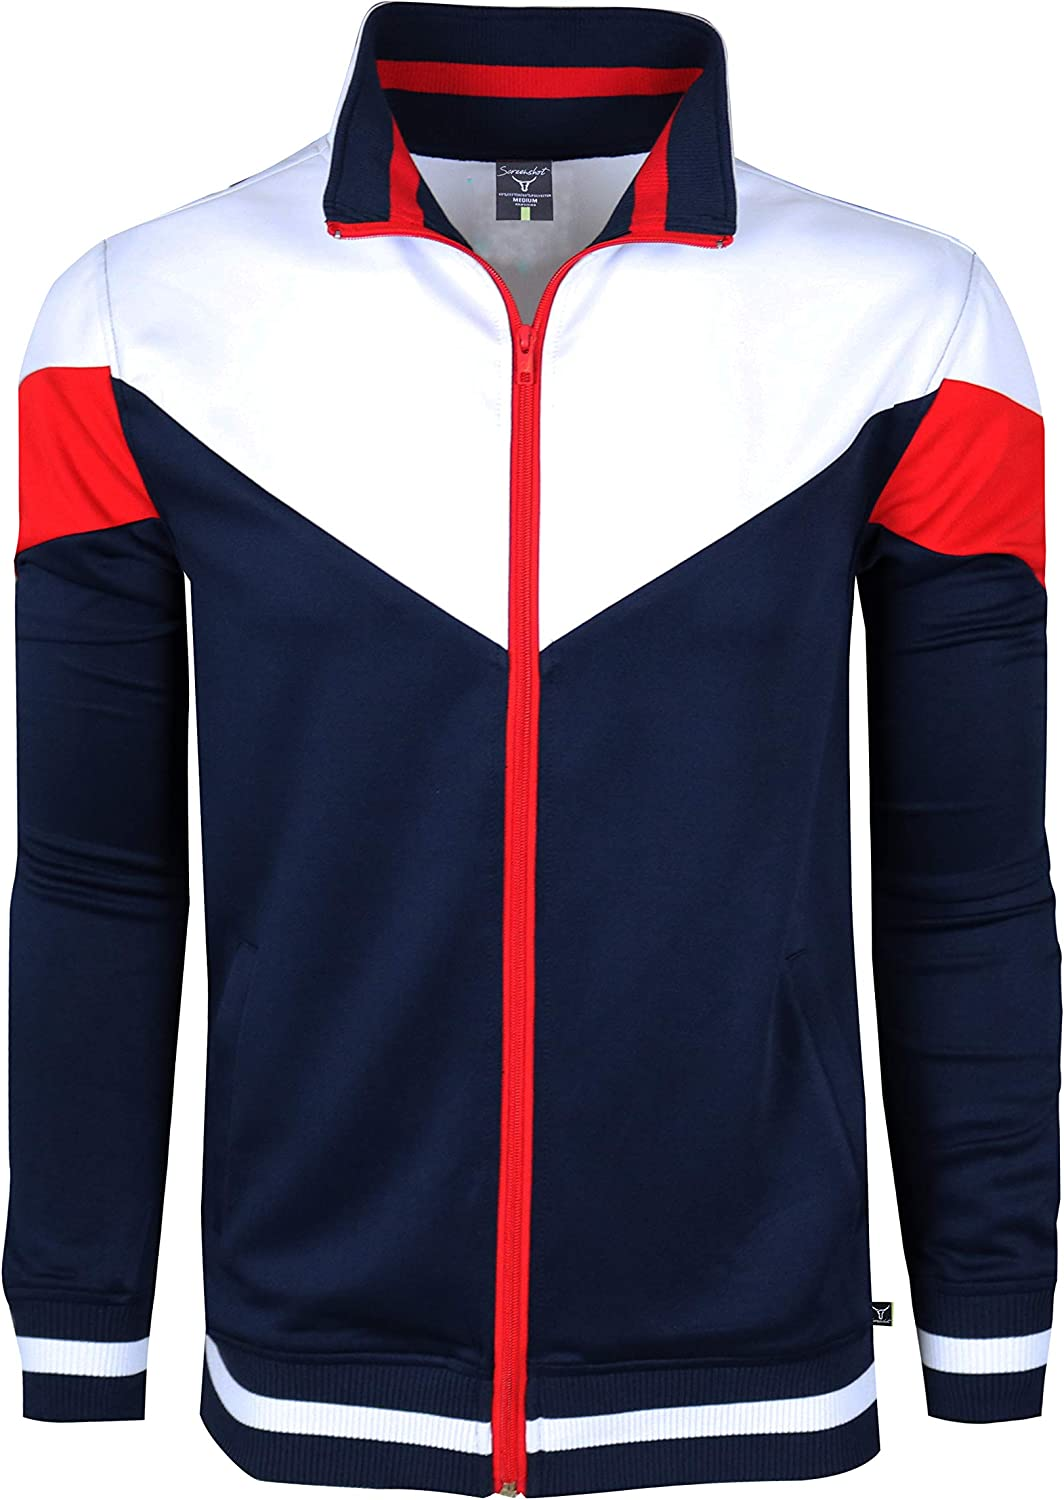 SCREENSHOTBRAND-F11956 Mens Urban Hip Hop Premium Track Jacket Athletic Color Block Fashion Sweatshirt-Navy-2XLarge